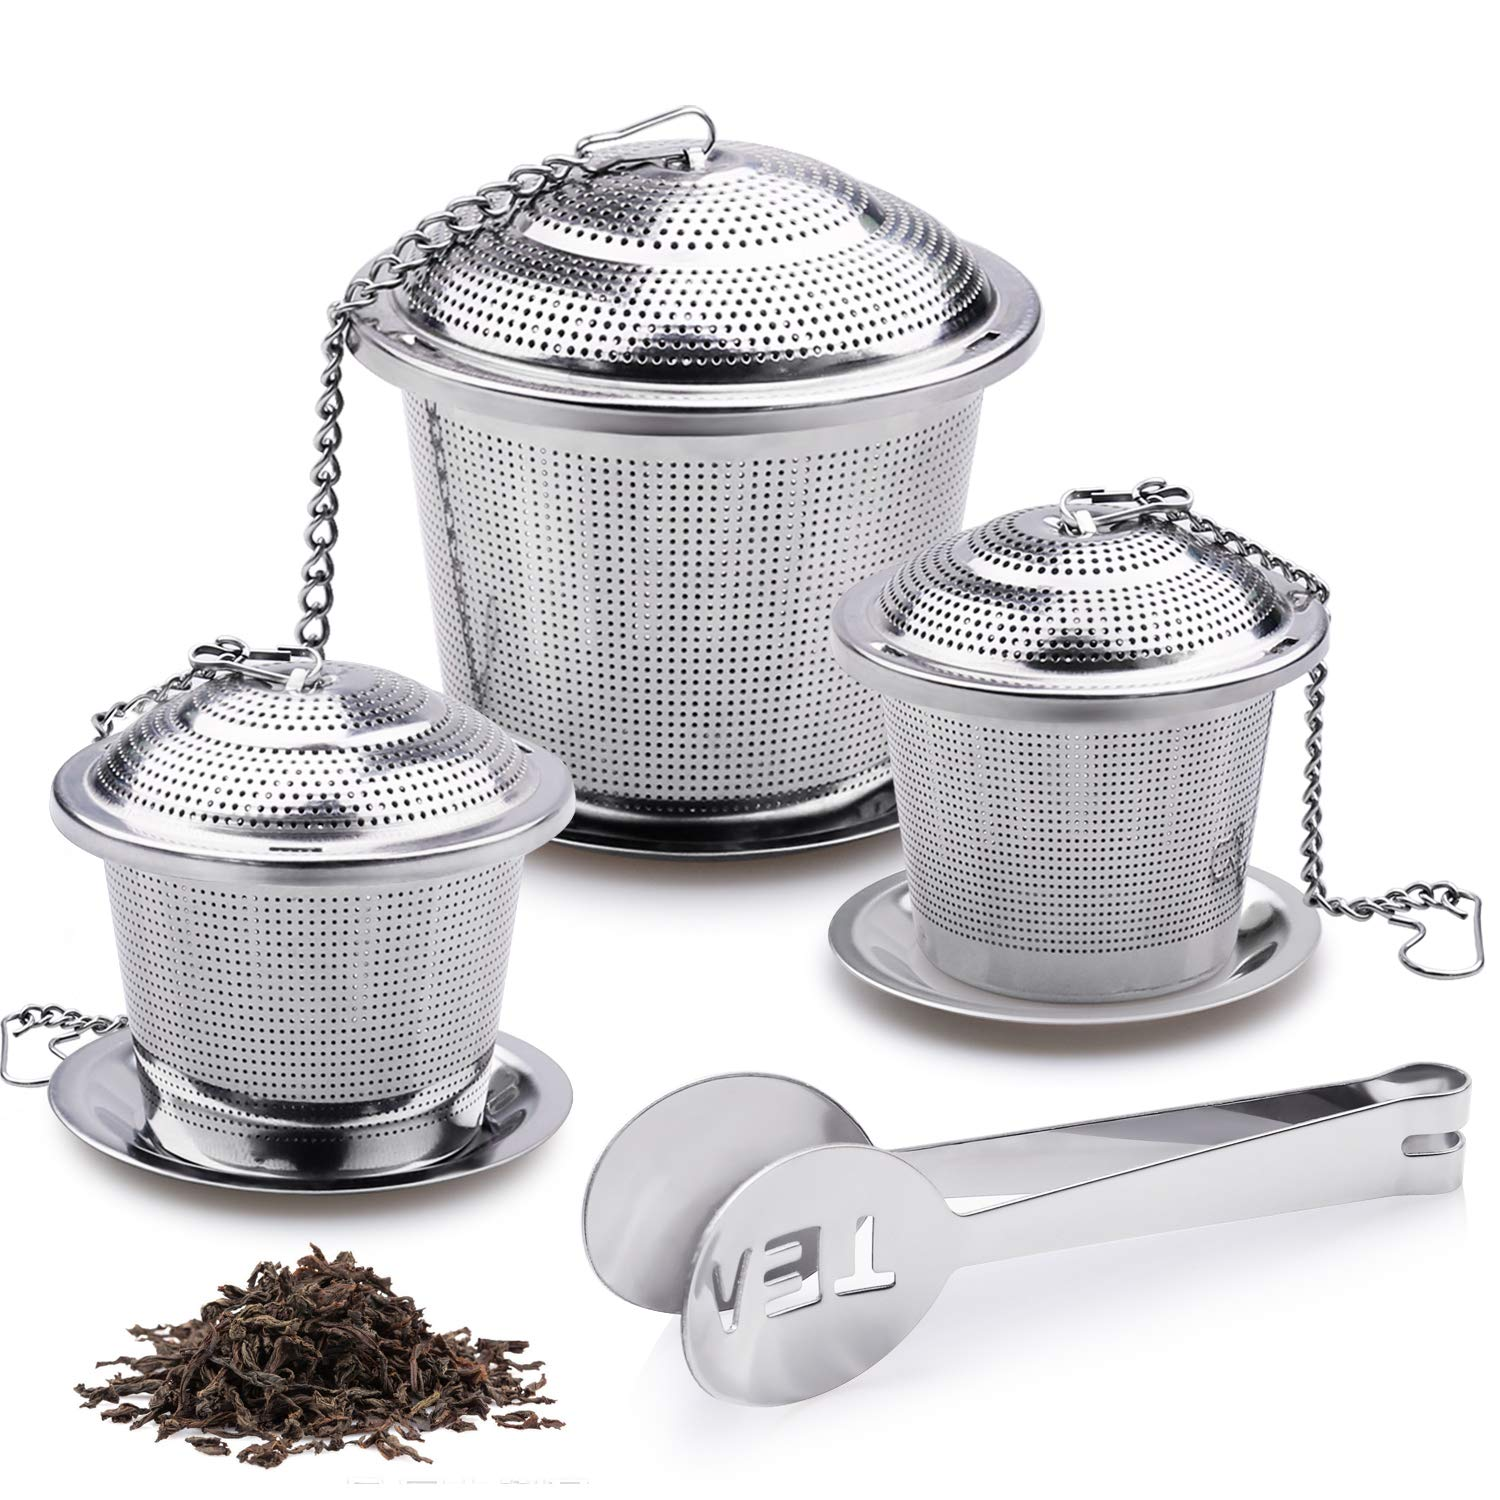 Fine mesh so none of the tea leaves or crumbs get into your brew!